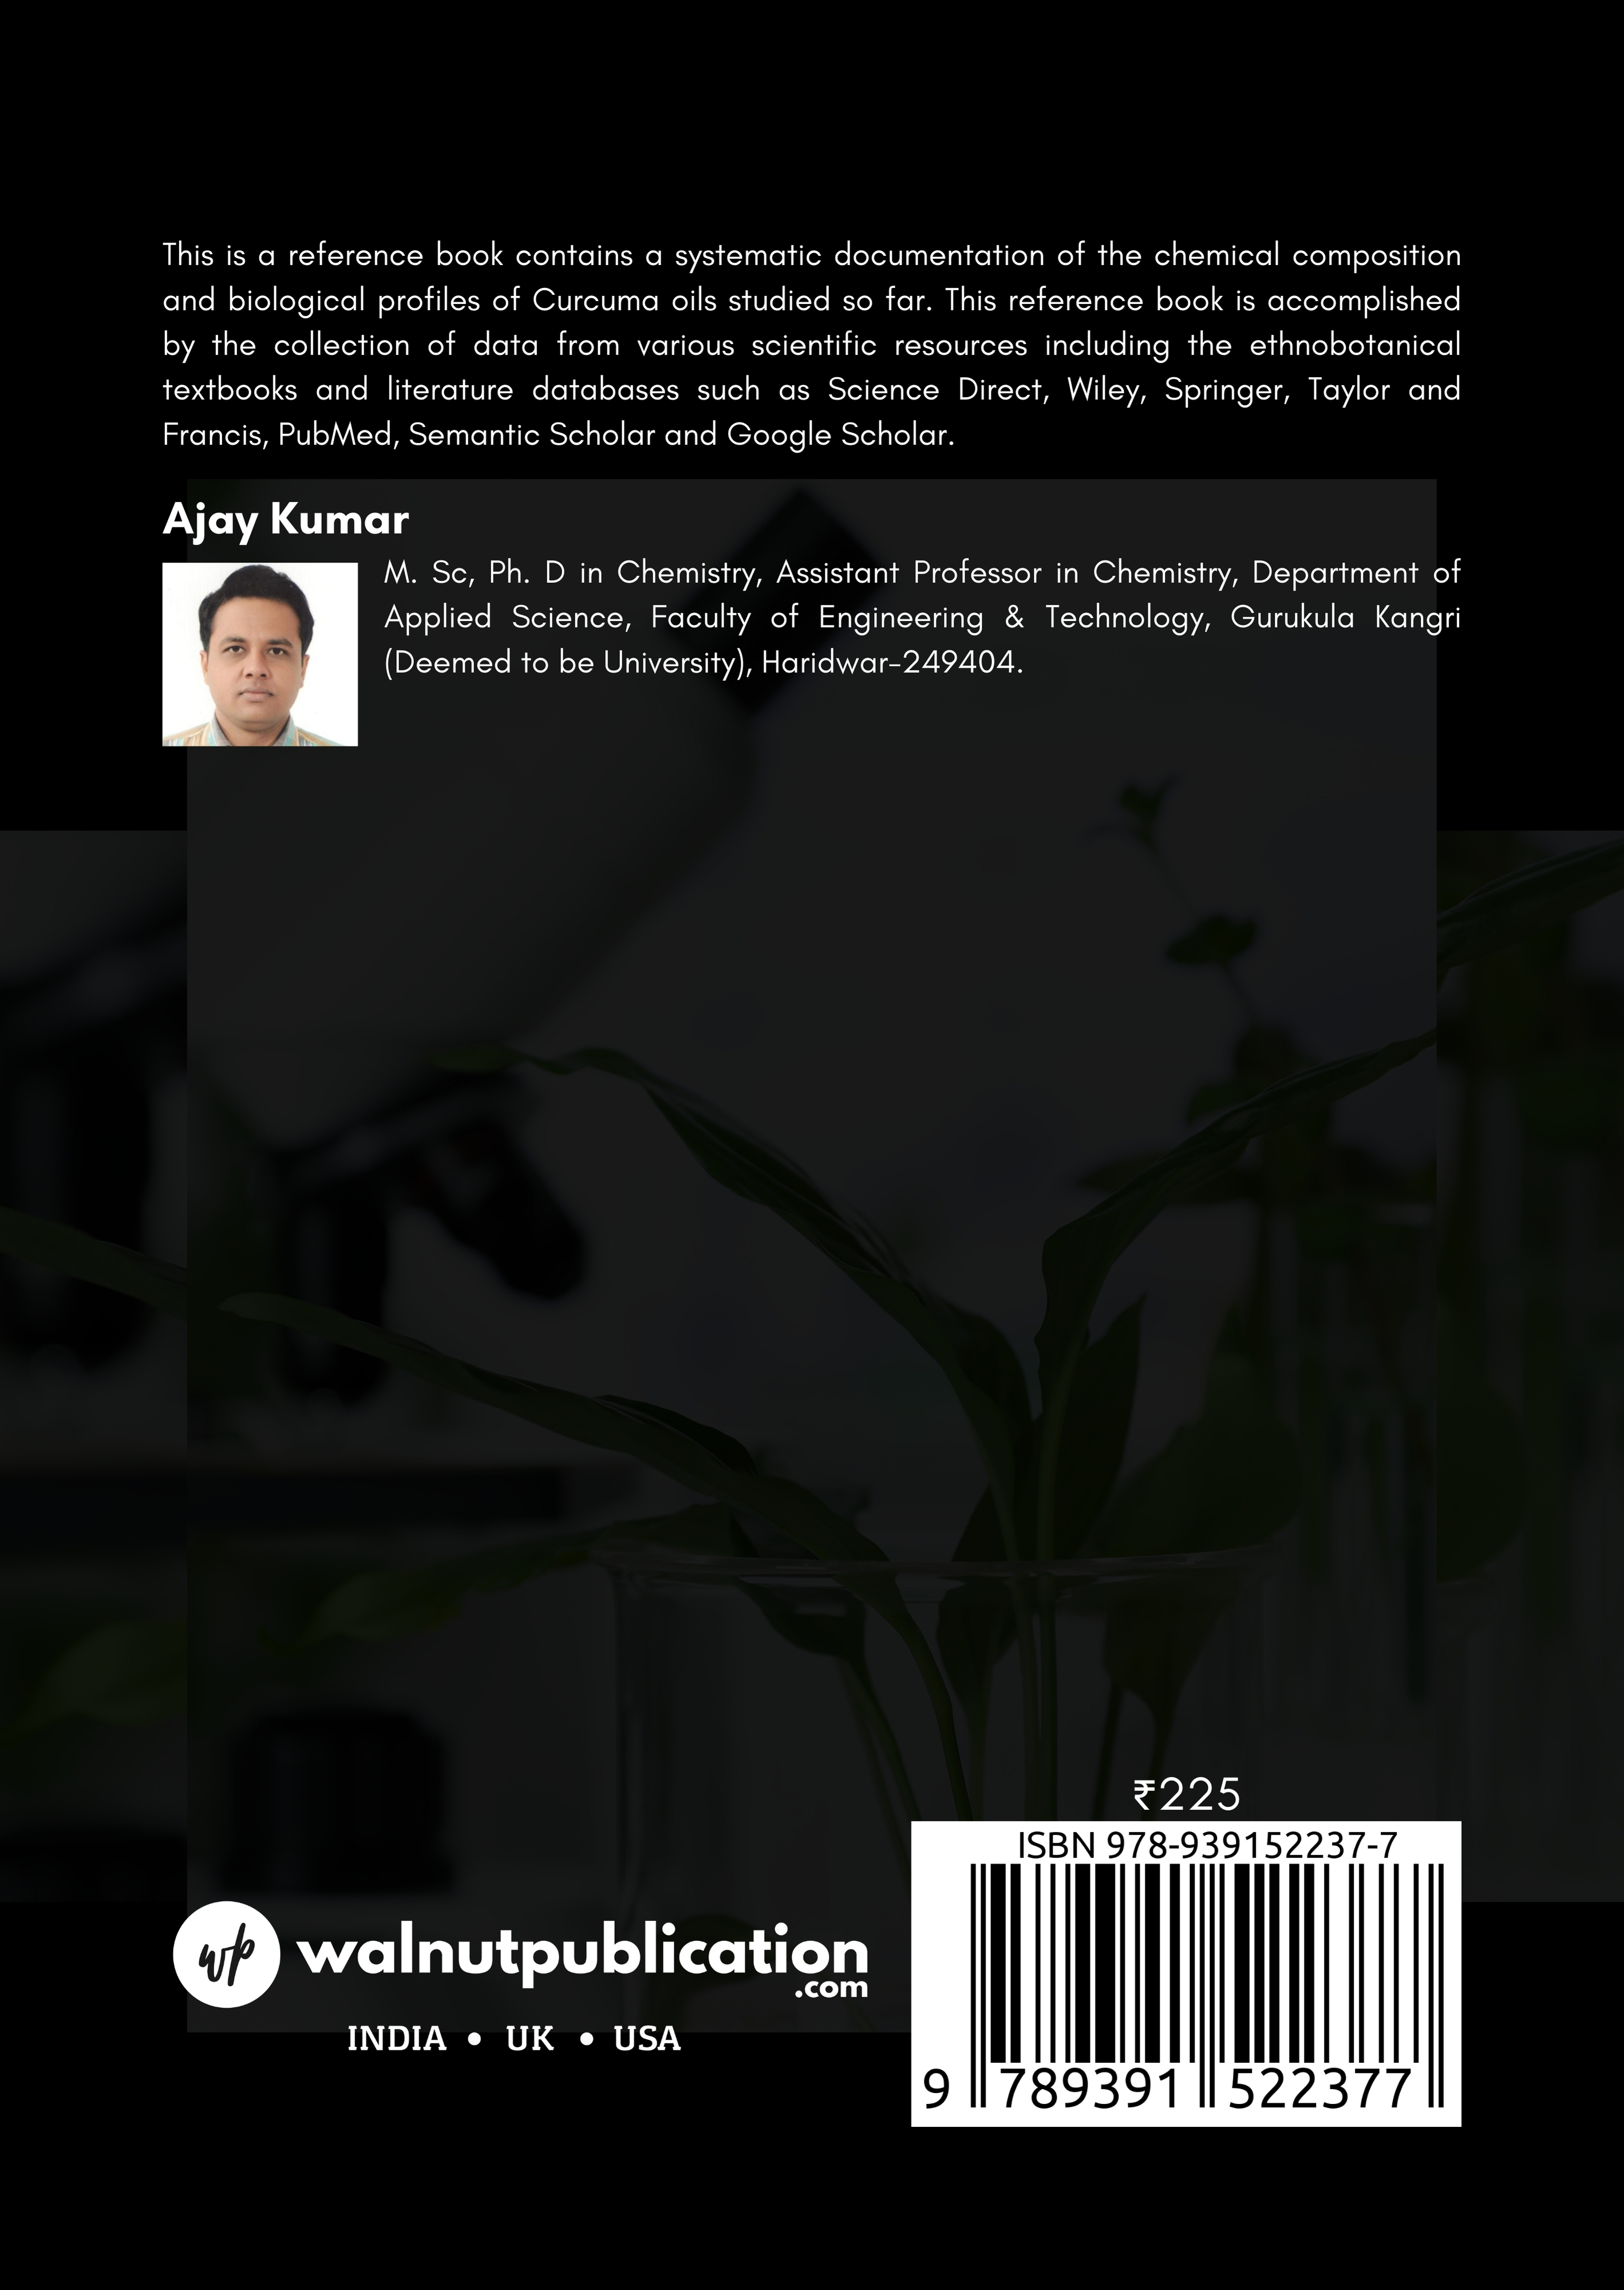 Chemical and biological profiles of Curcuma oils - An overview (A Peer Reviewed Reference Book) - Back Cover